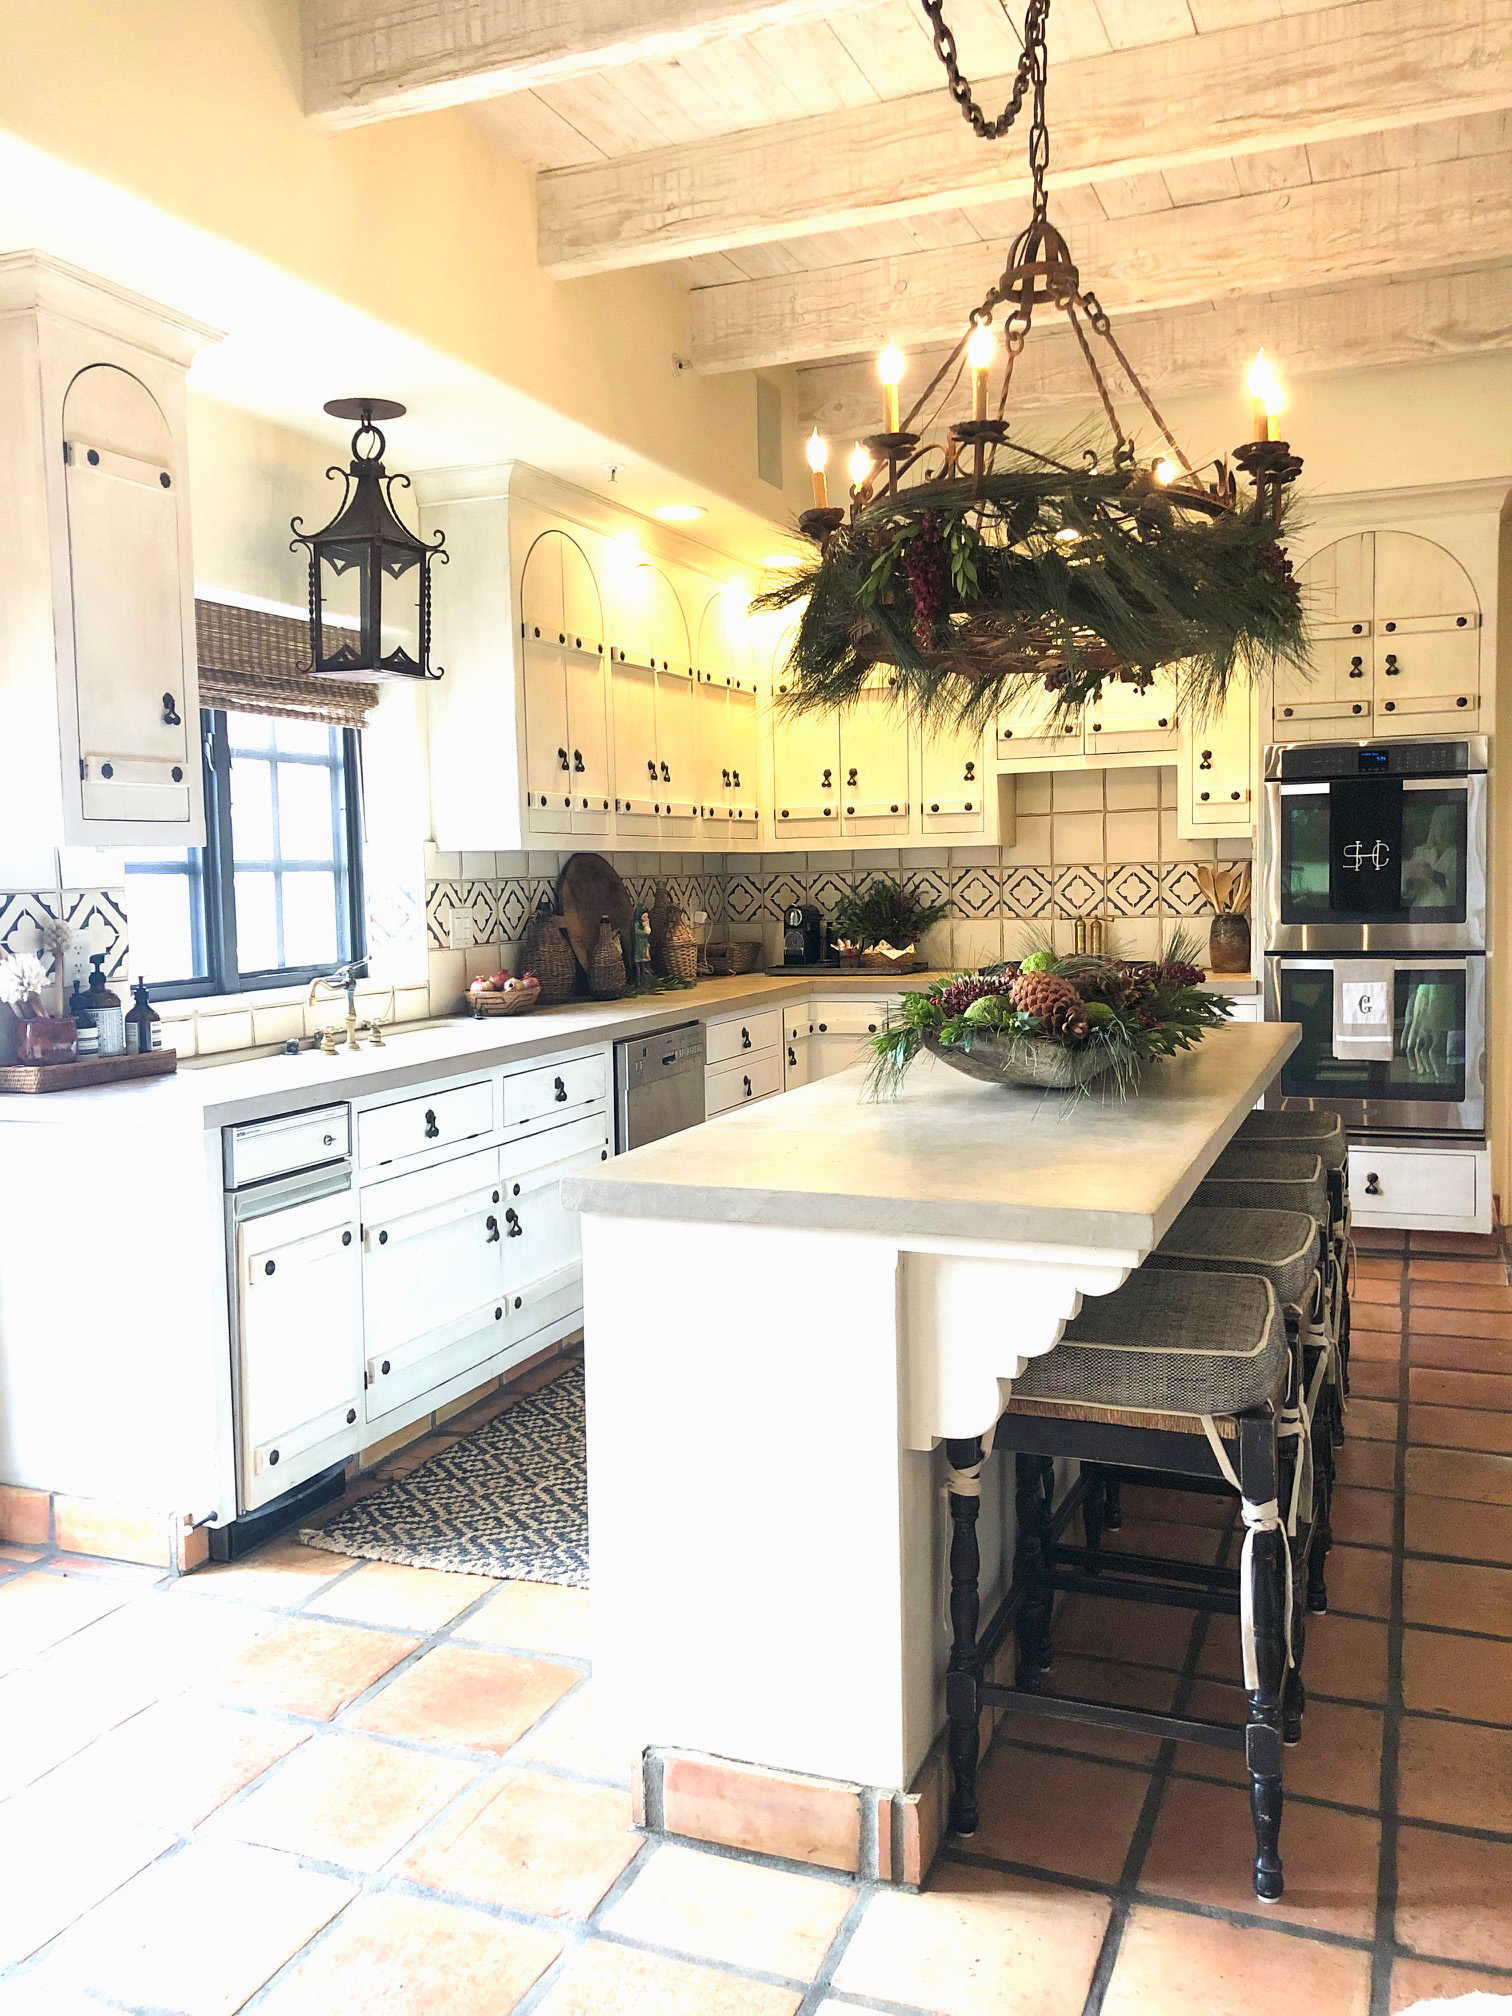 cindy hattersley kitchen decorated for Christmas